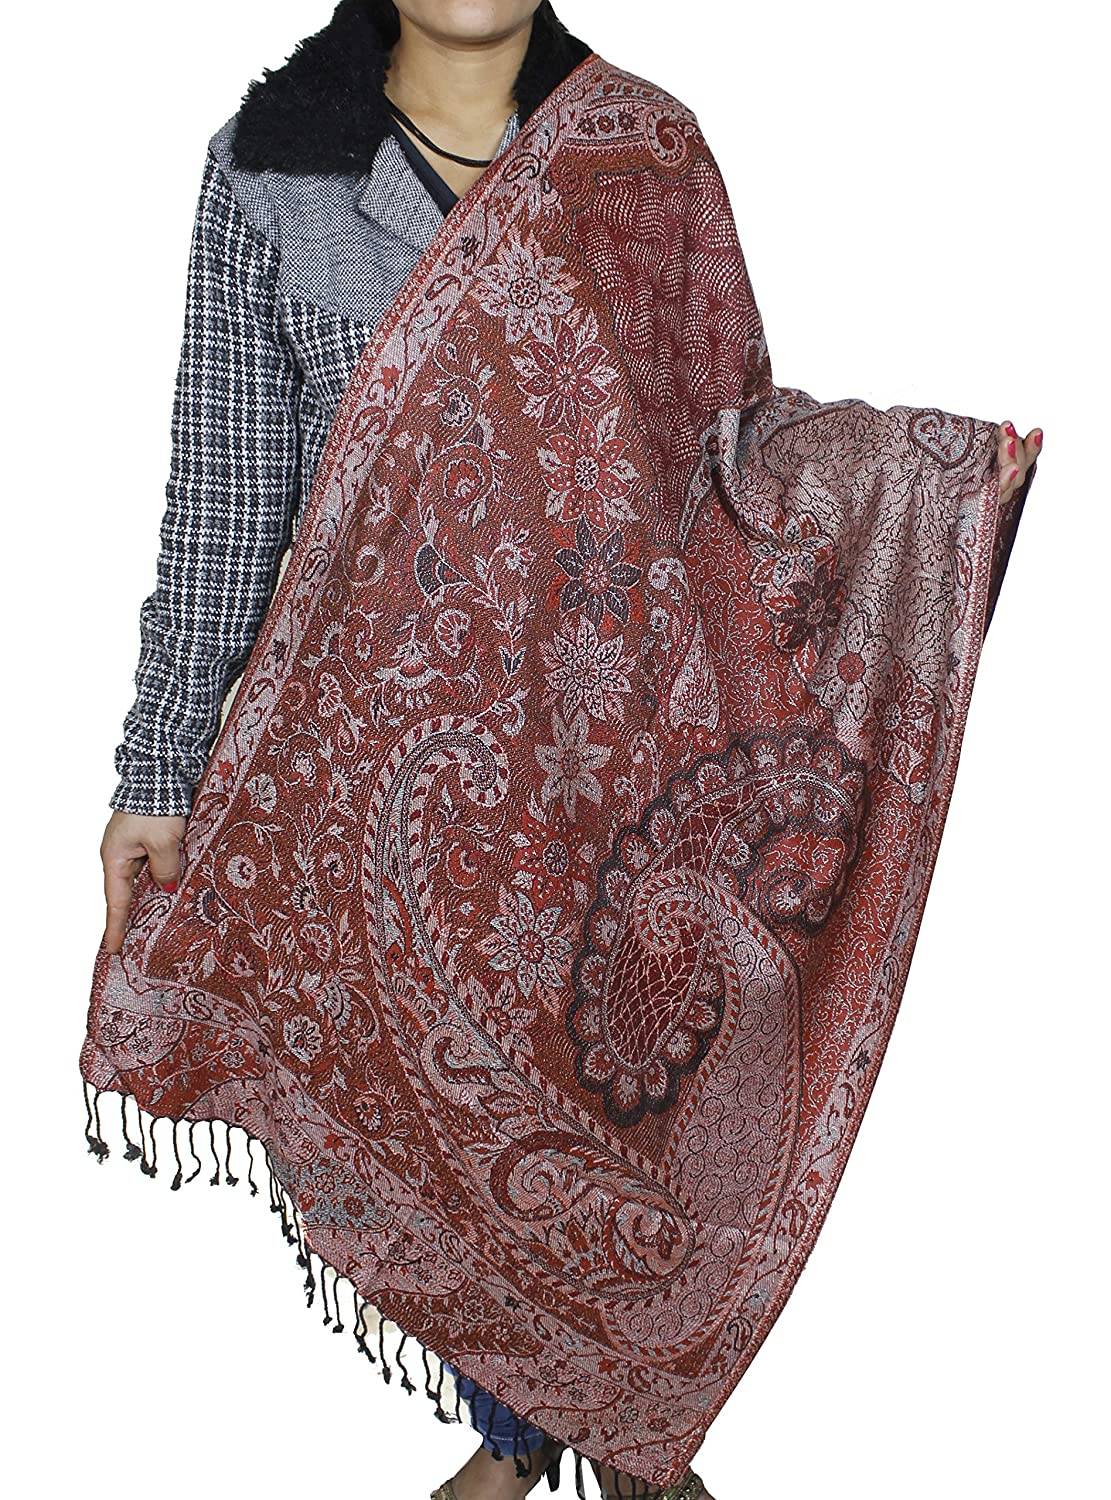 Wedding Bridal Wrap Brown -Indian Paisley Pattern Stole Scarf for Girls